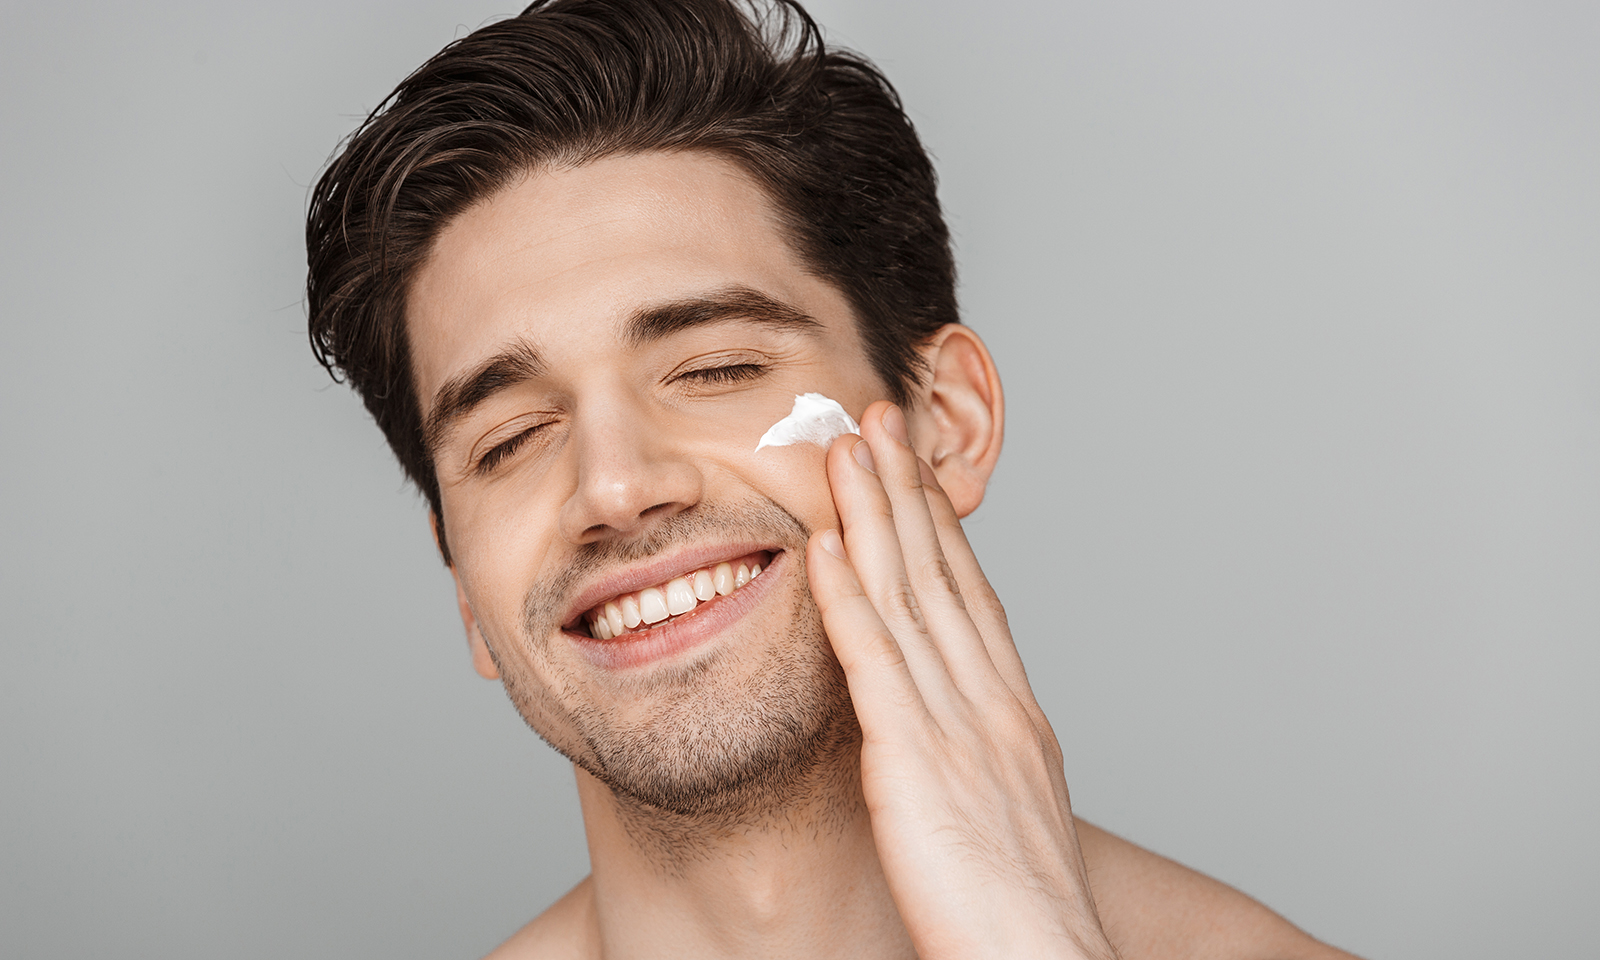 affordable prices-luxury-skincare-man-applying-skincare-on-face